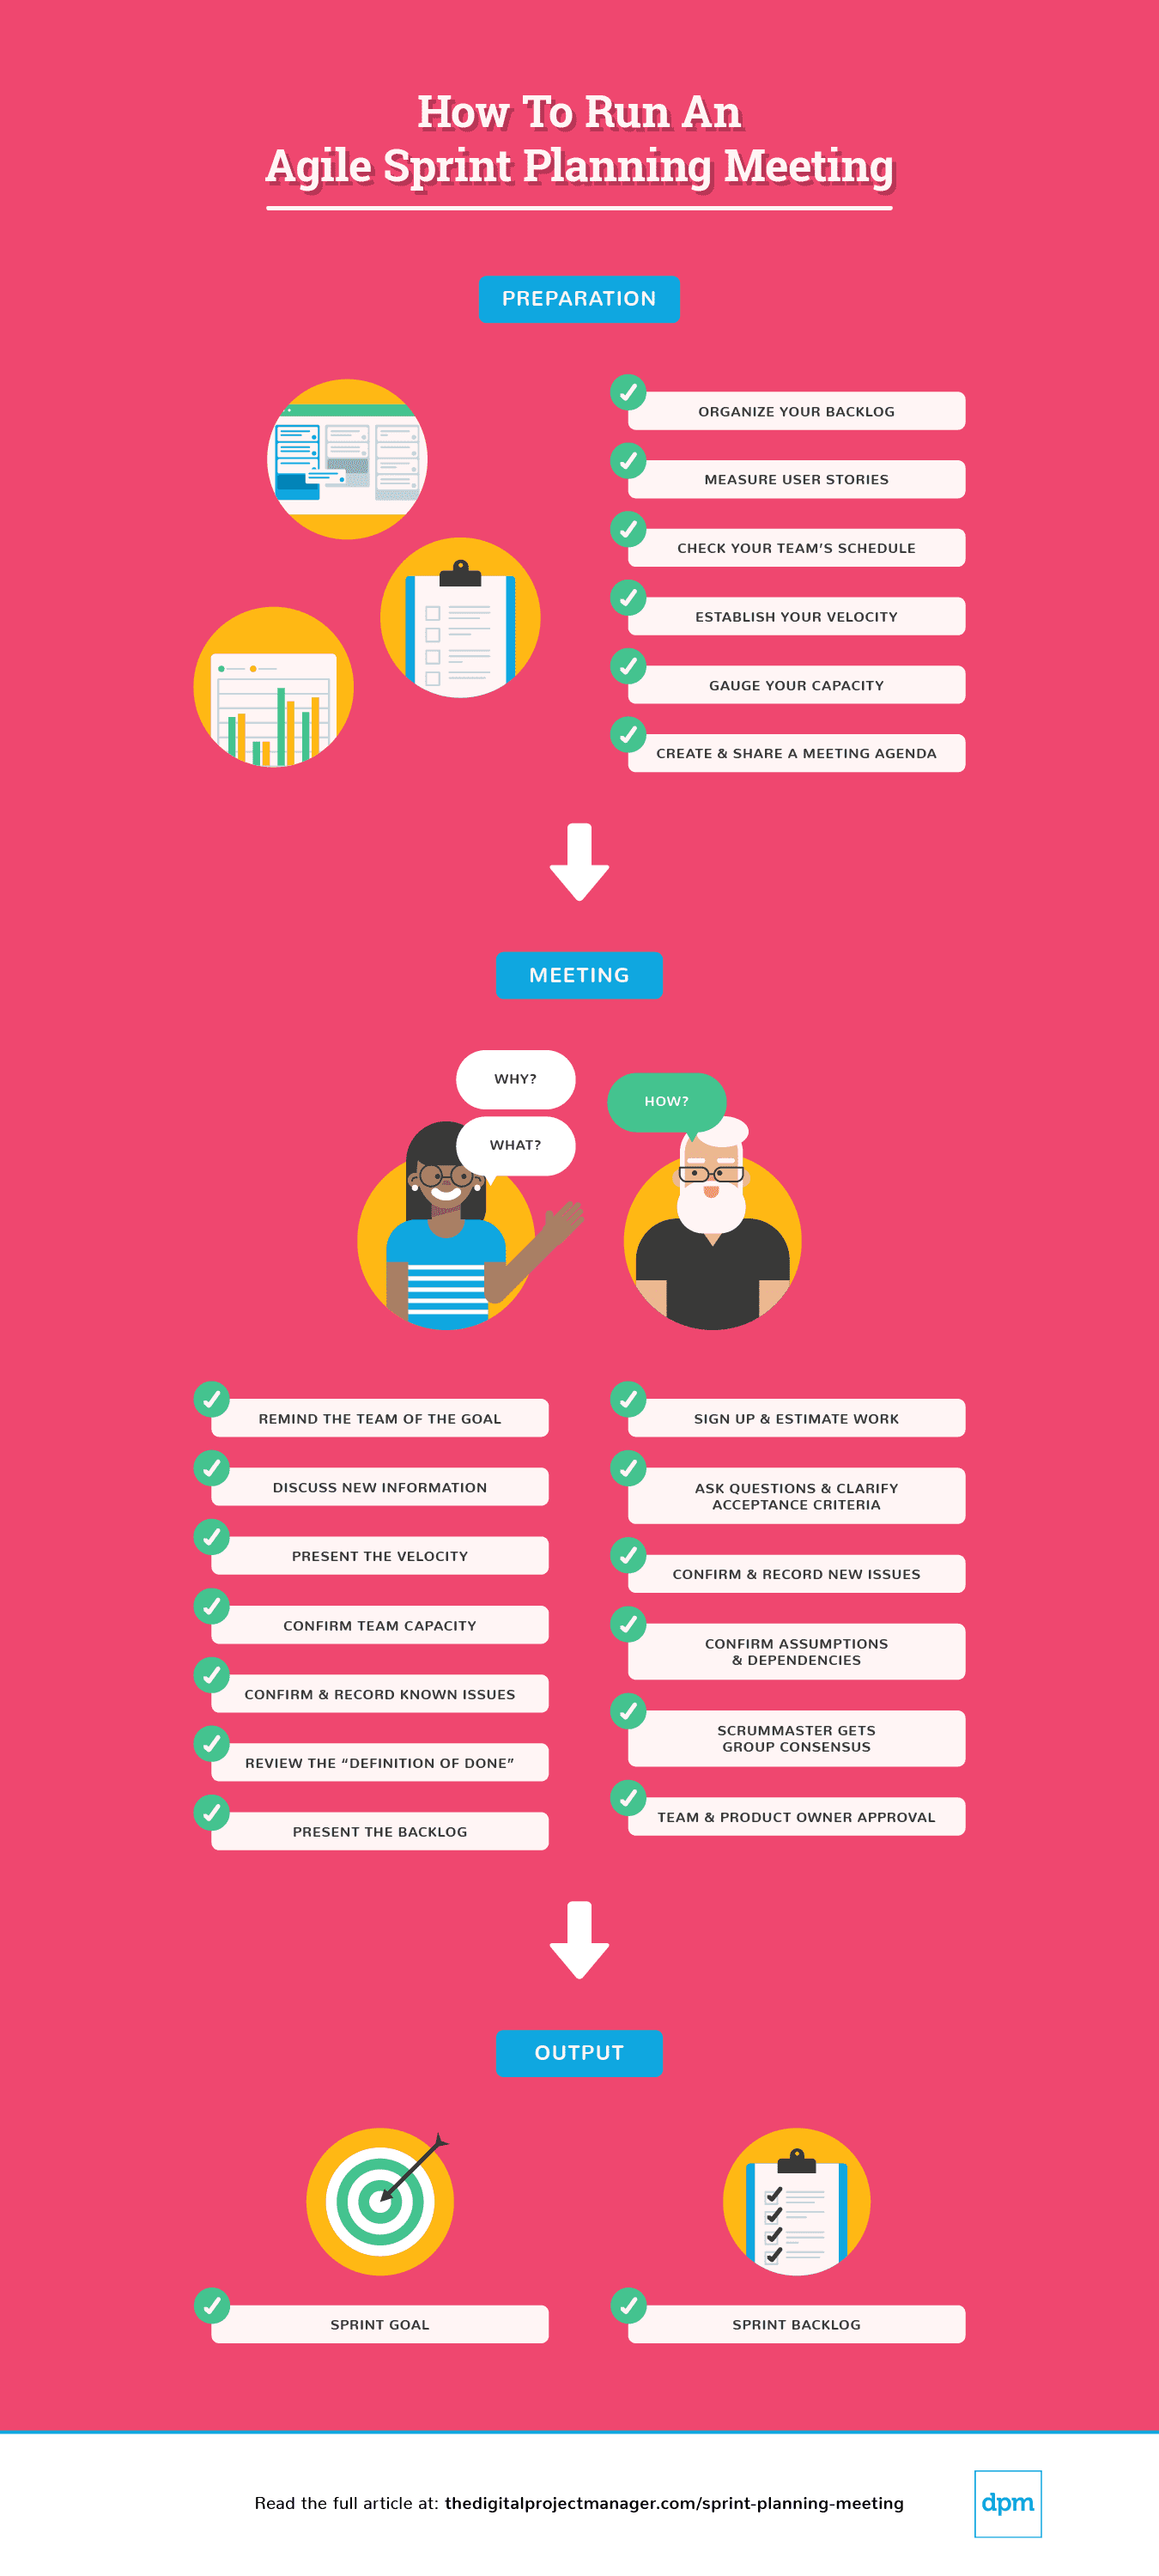 how to run an agile sprint planning meeting - infographic